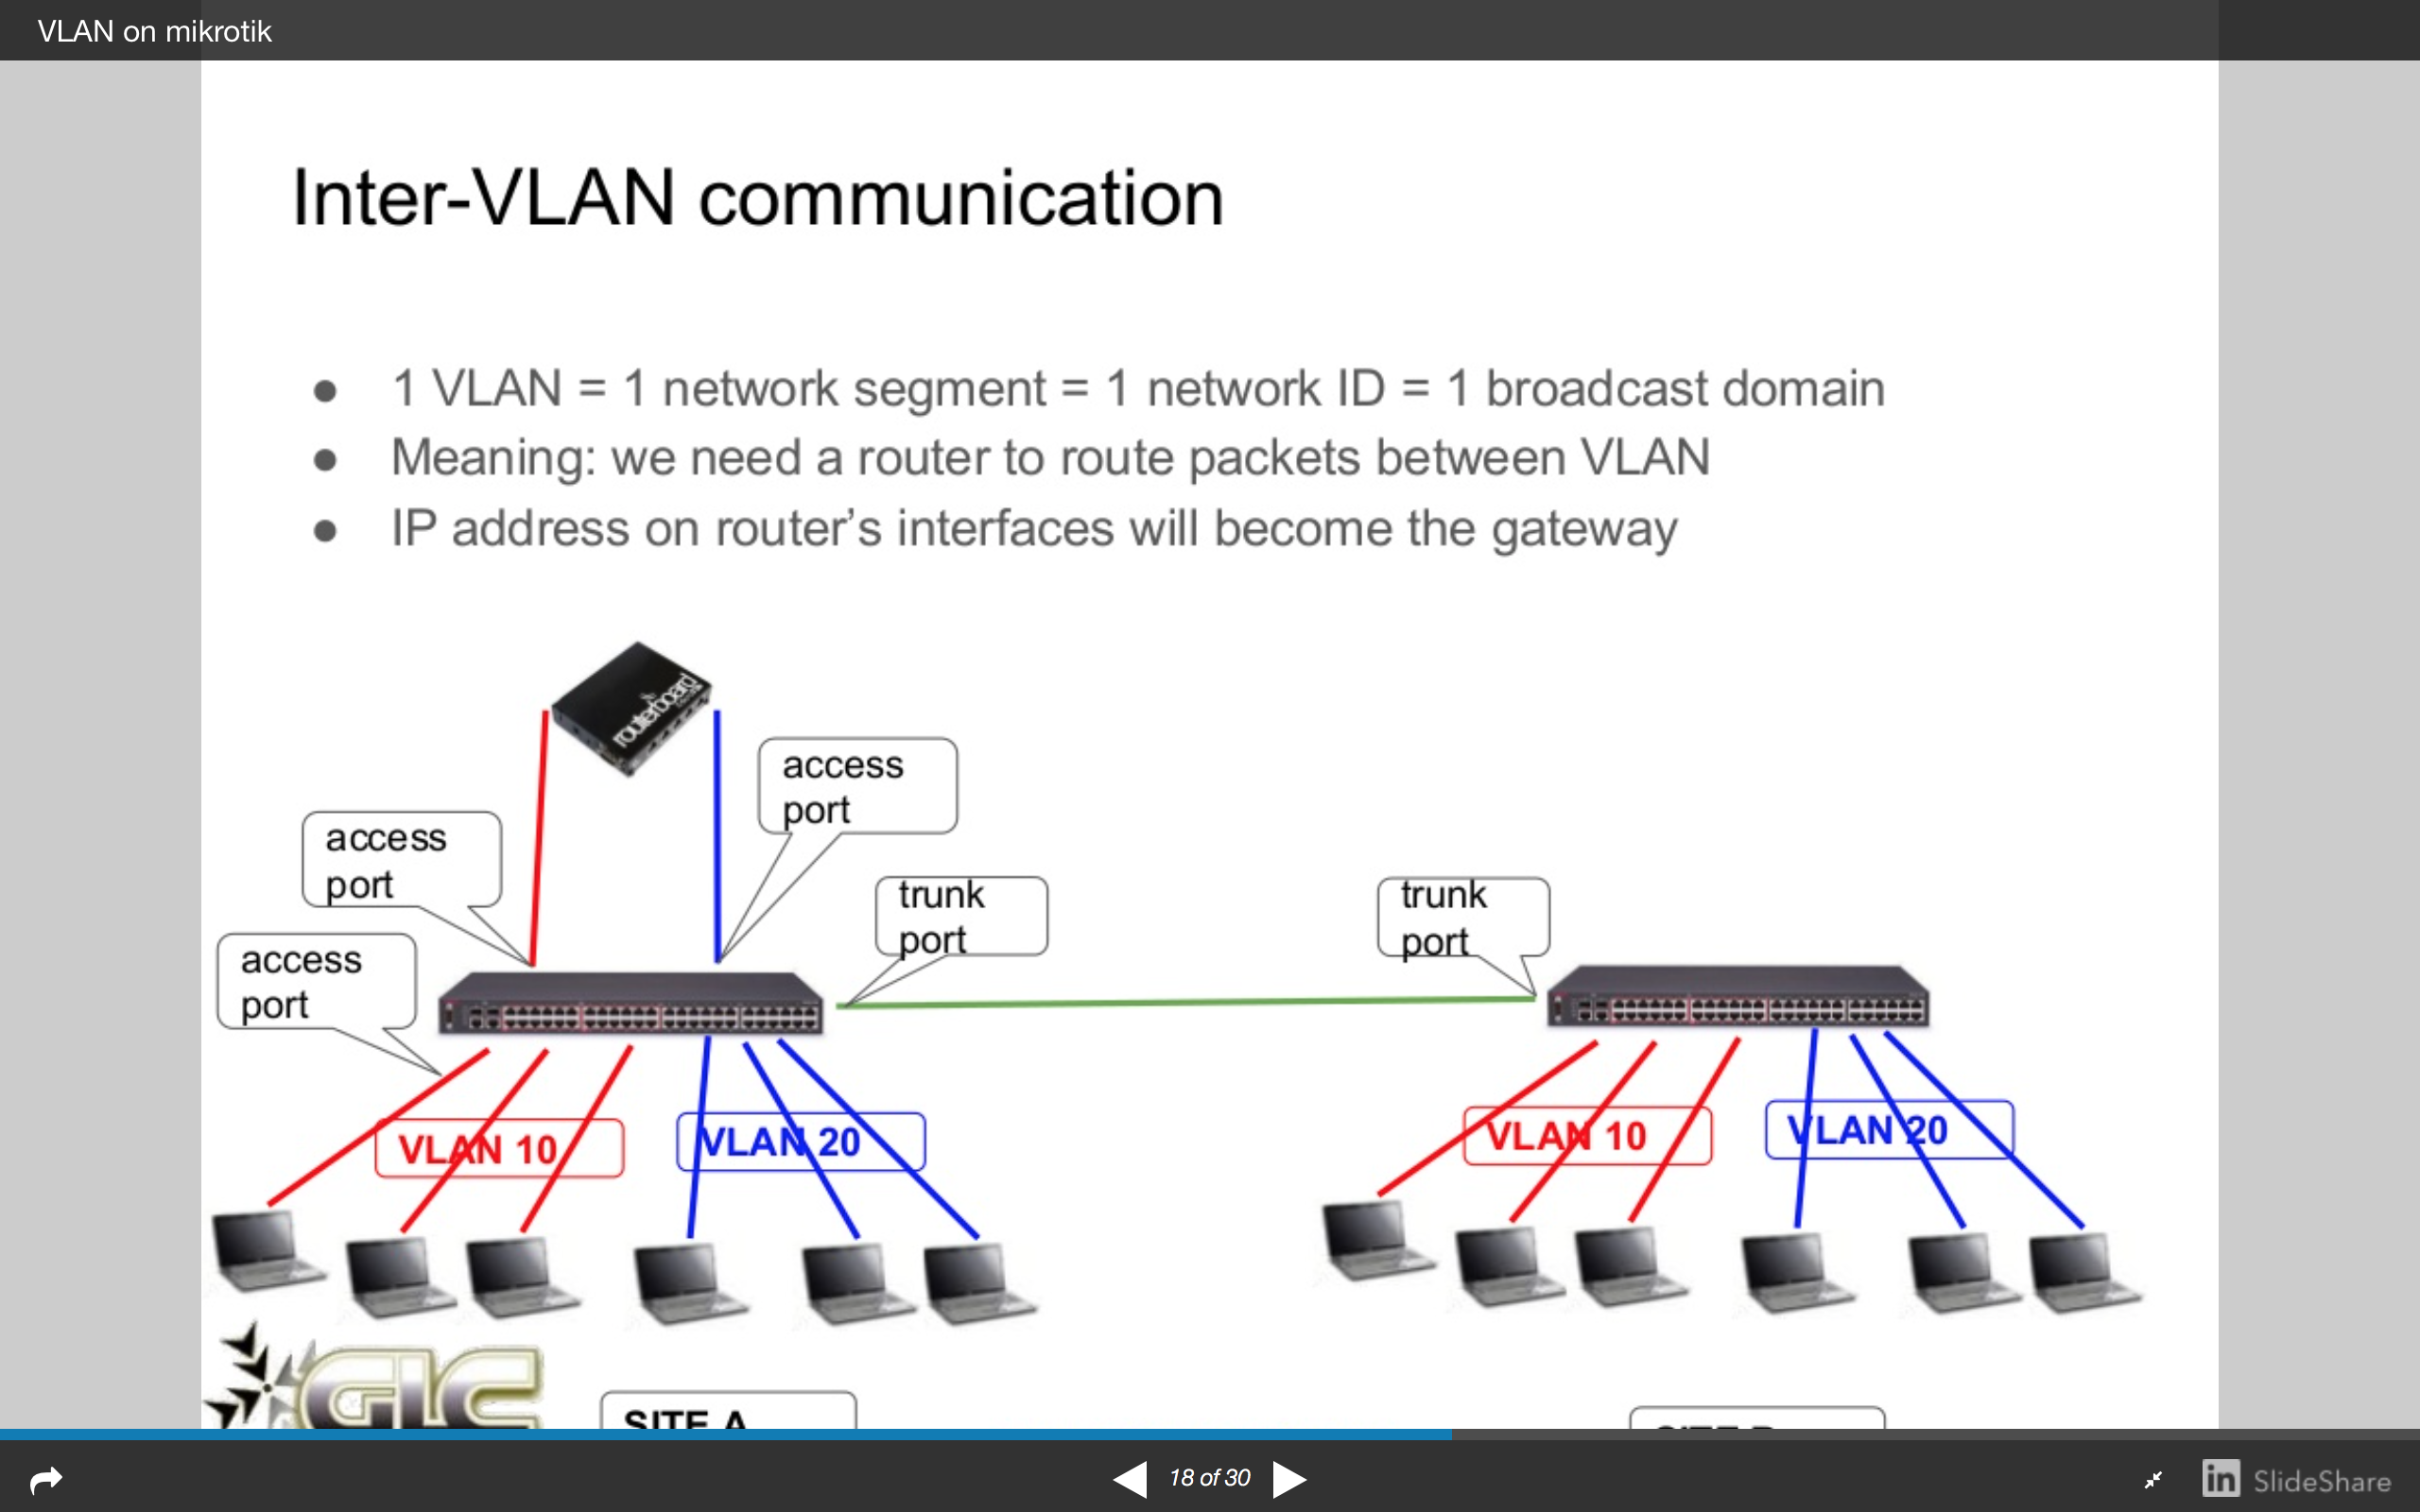 Mikrotik roles on VLAN